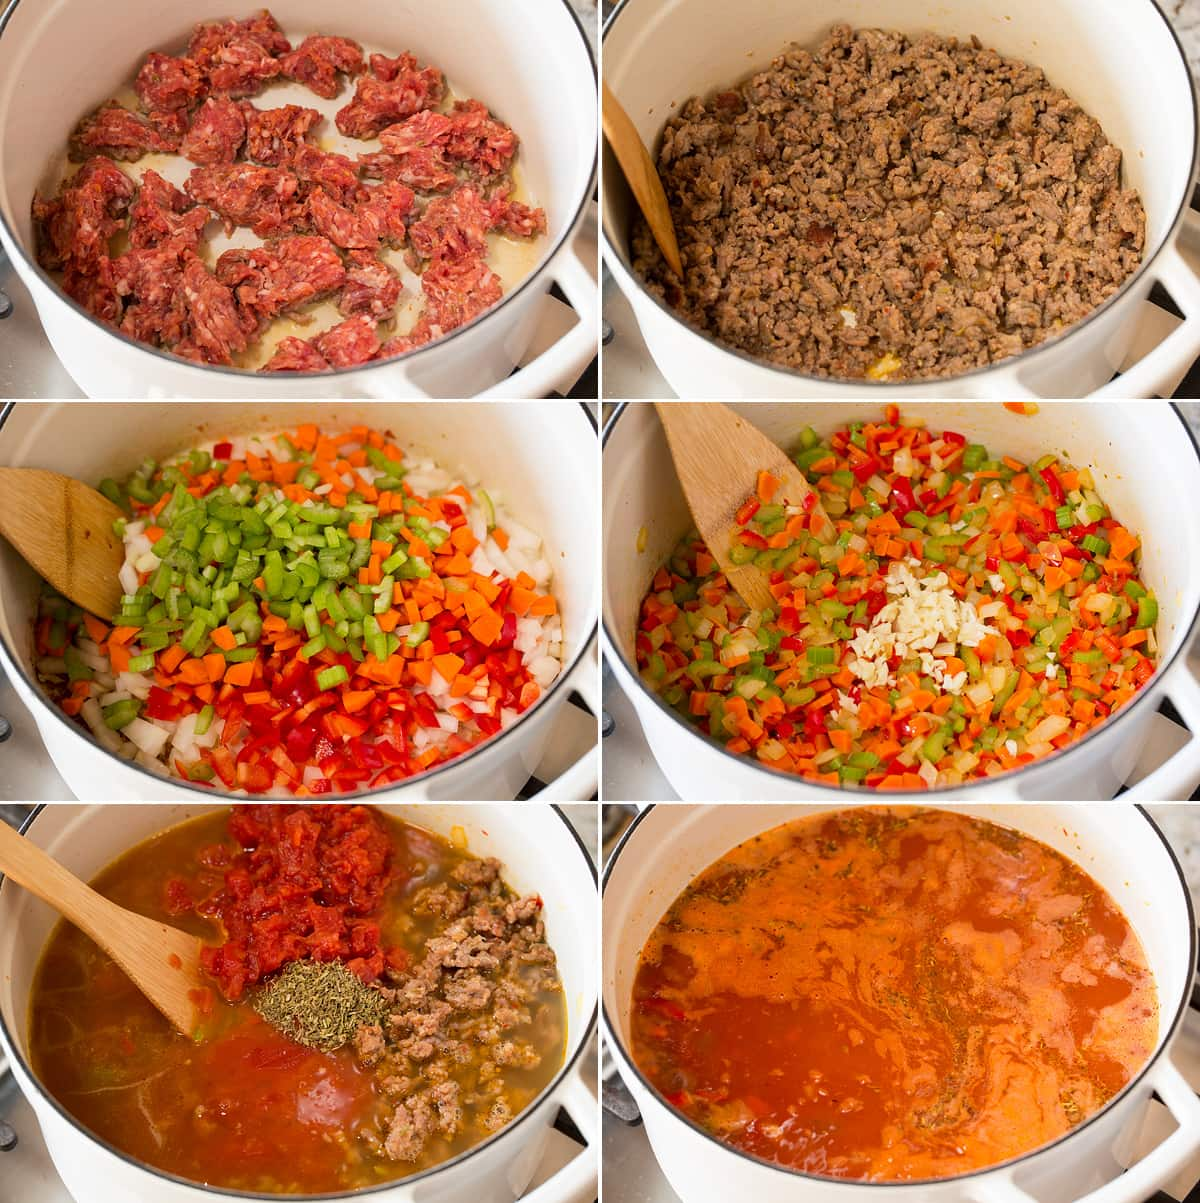 Collage of six images showing the steps involved in making the Italian sausage soup. Contains bratwurst, sautéed vegetables, broth and spices.